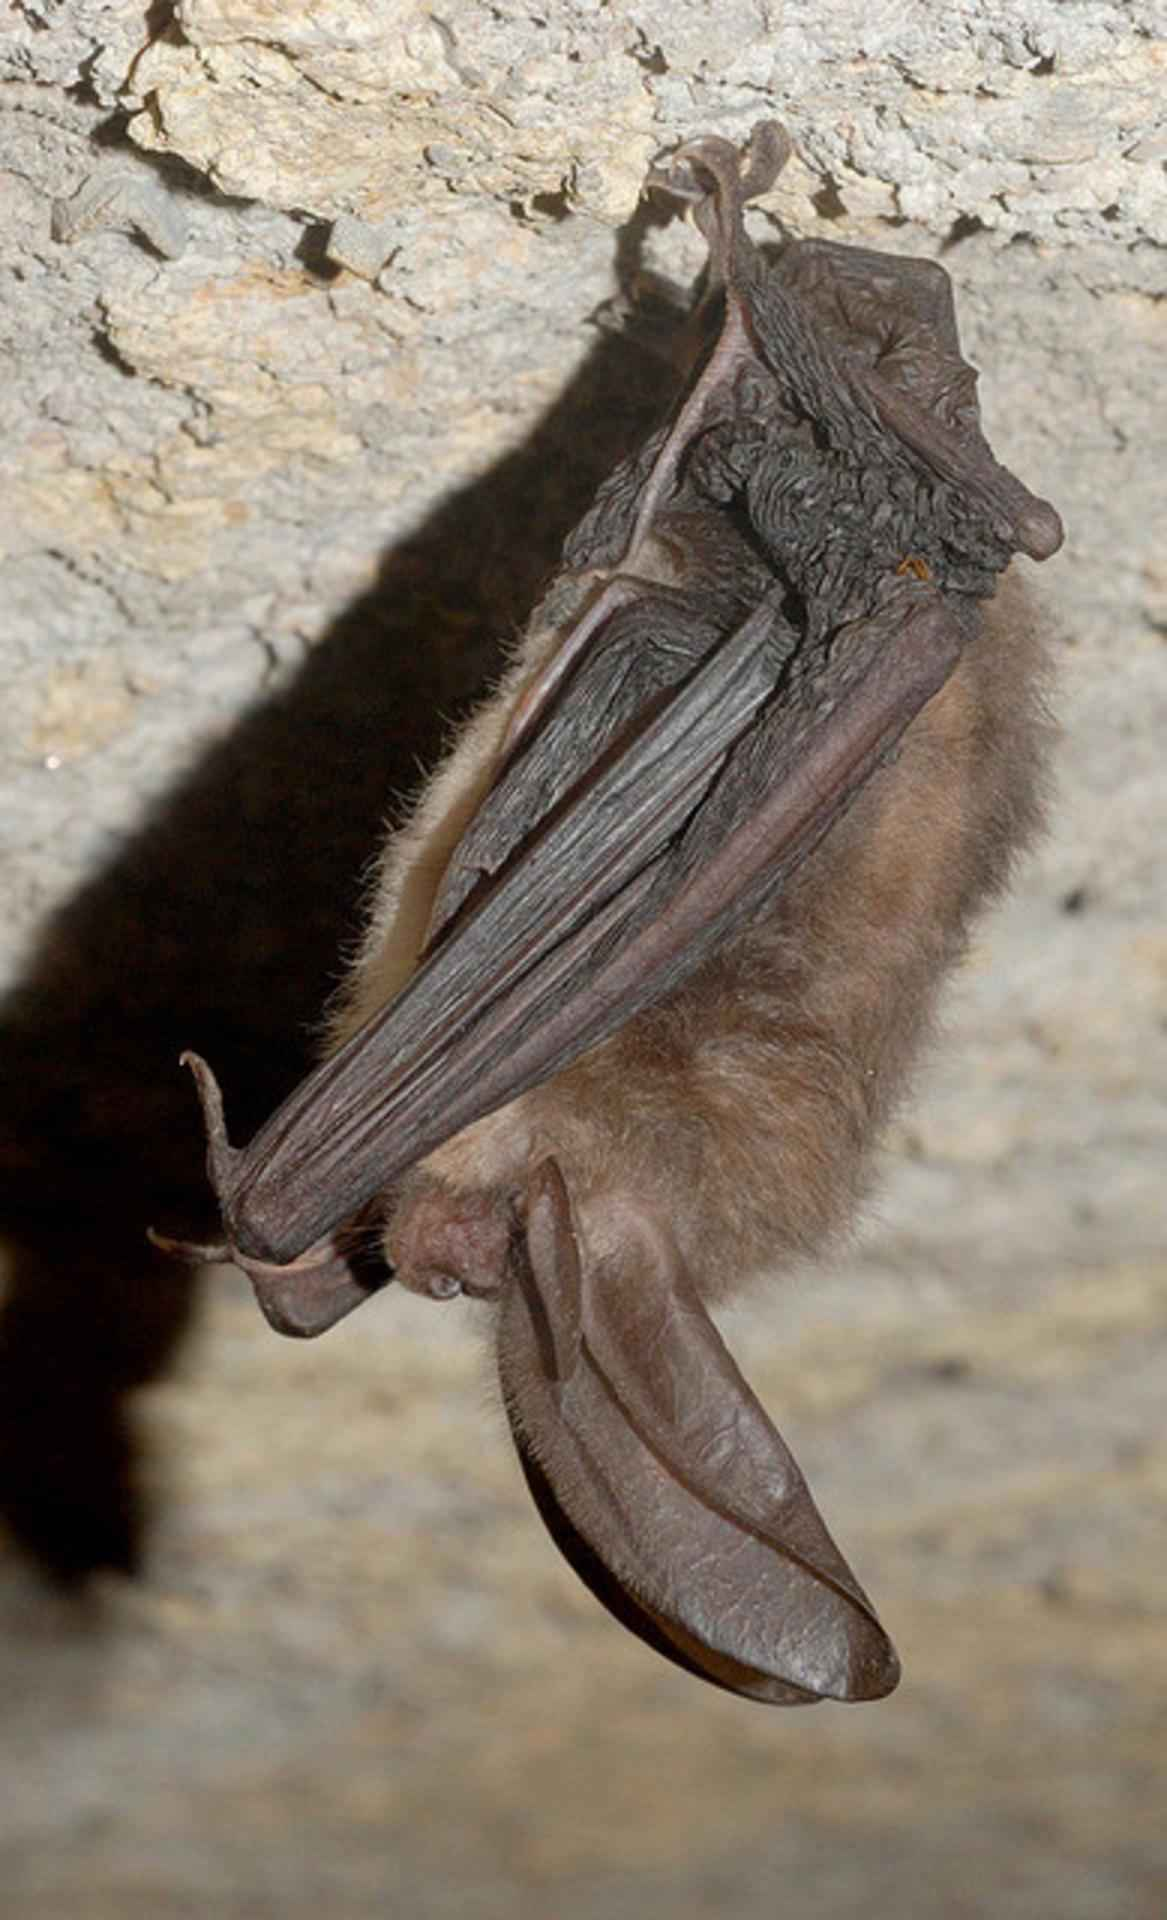 Townsend s  big eared bat Craig Stihler photo public domain